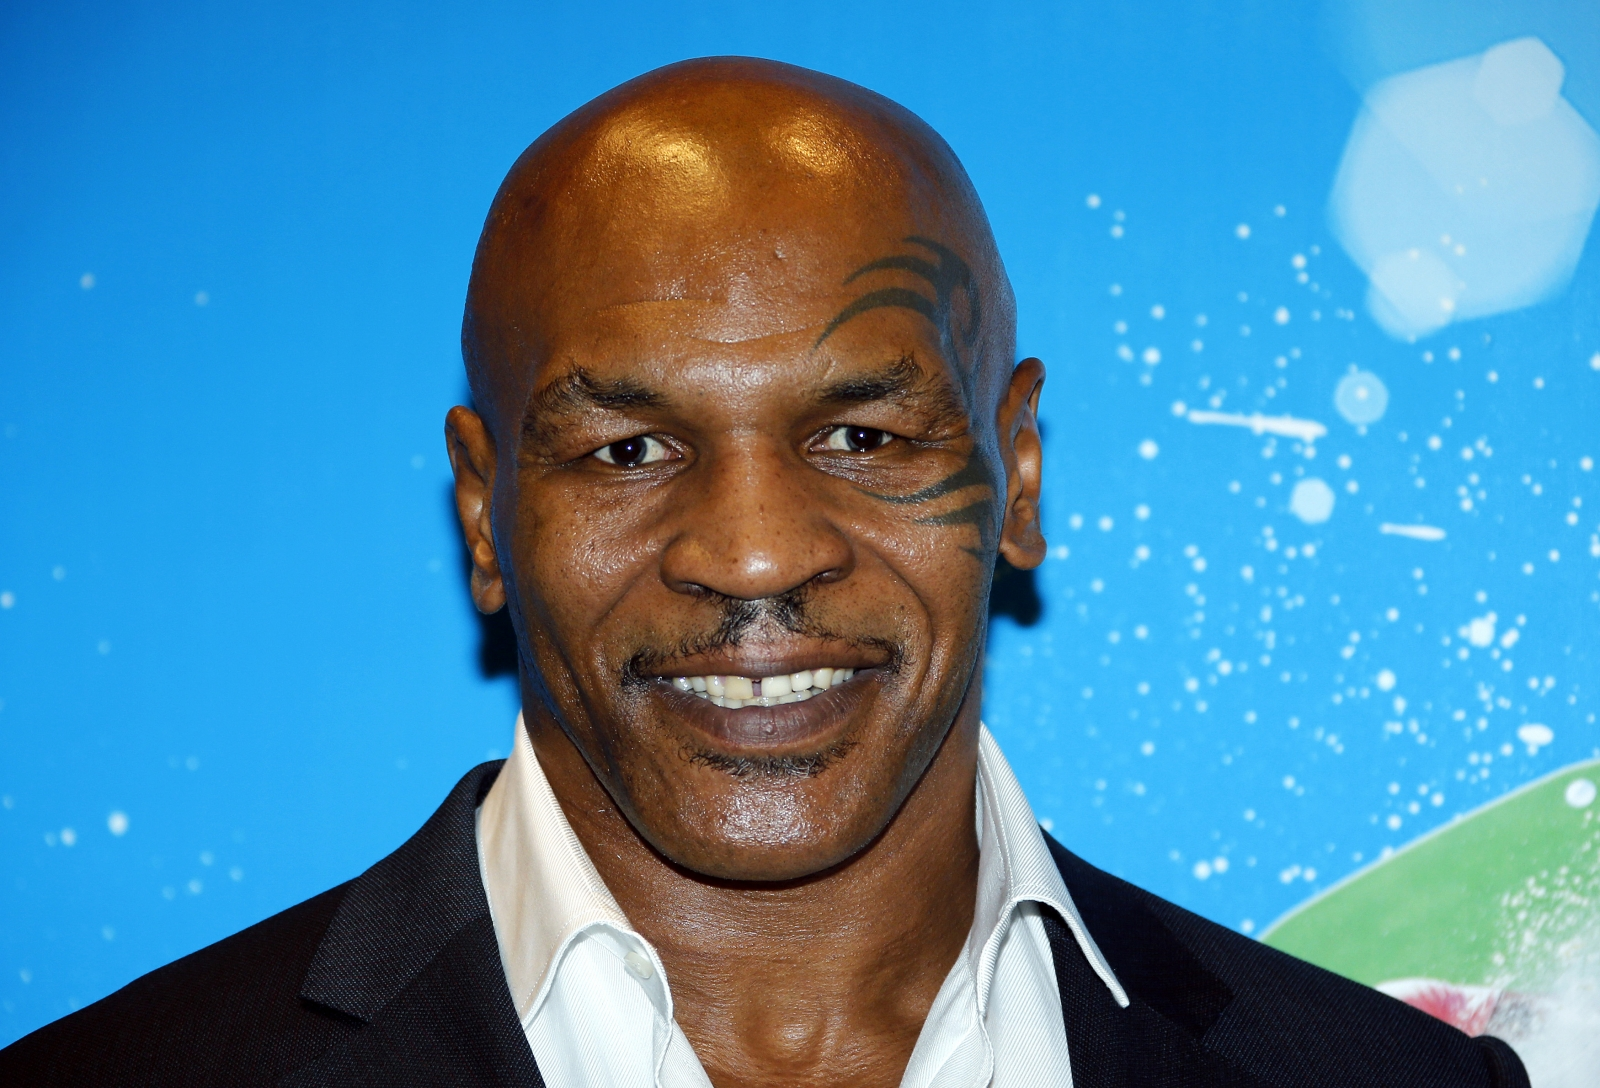 Mike Tyson birthday